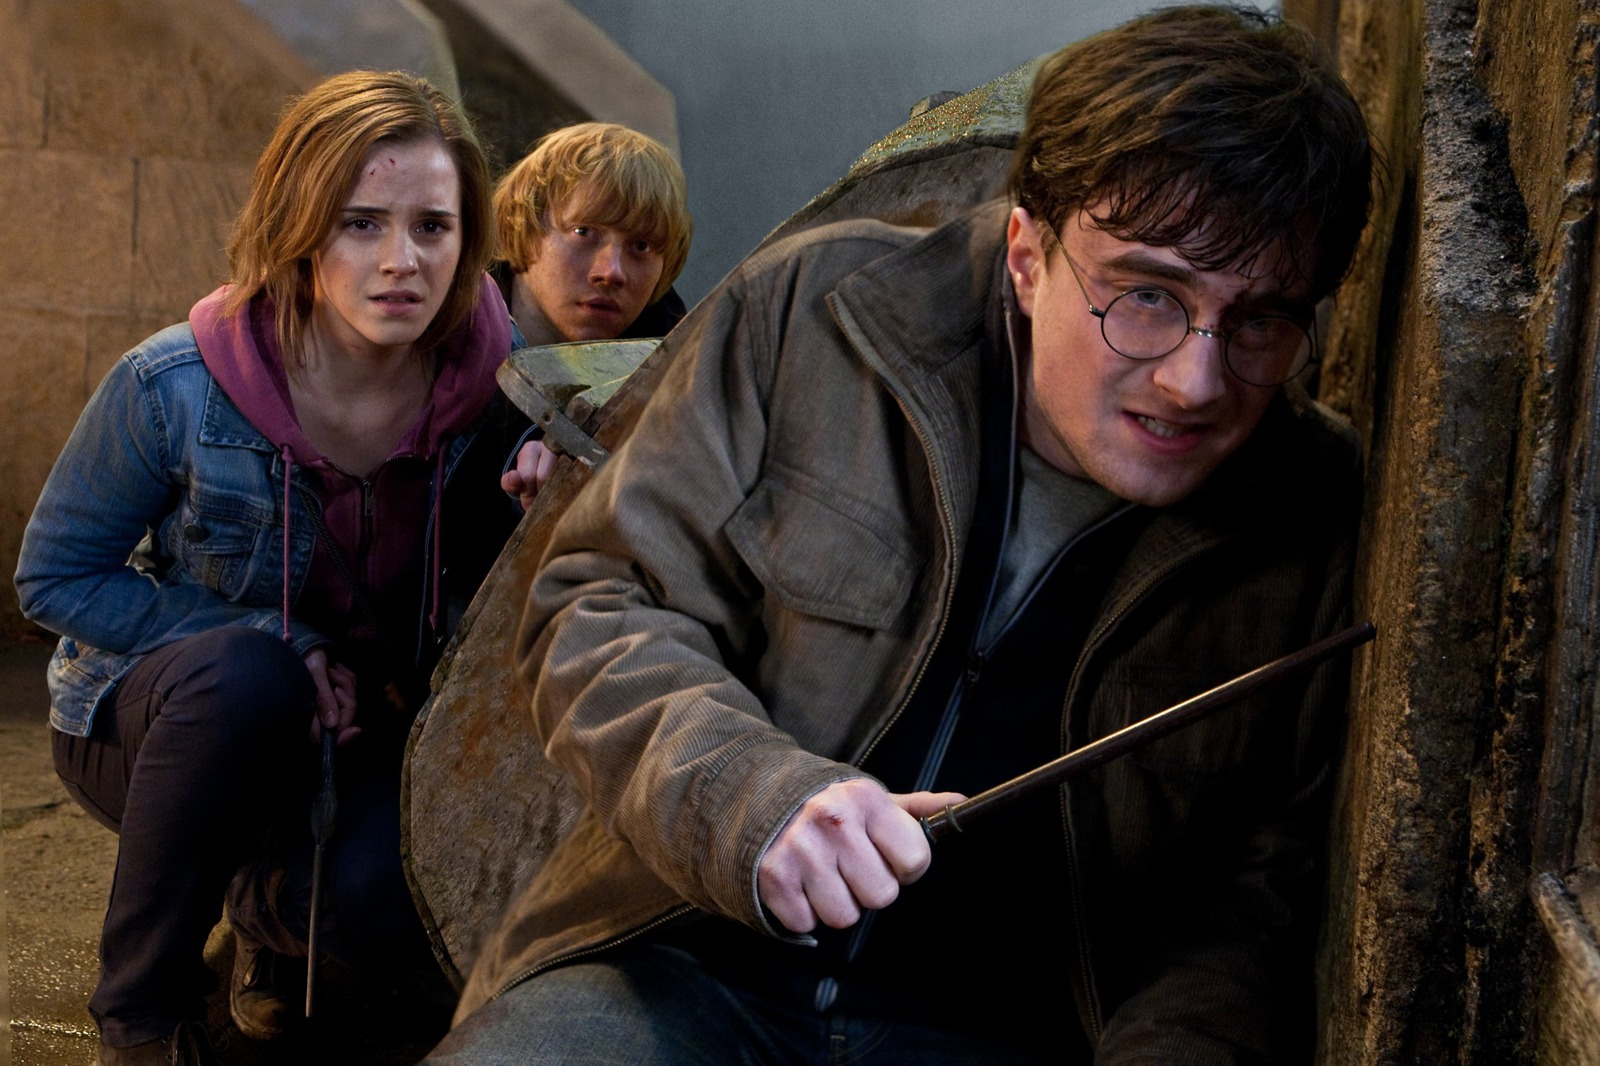 HARRY POTTER AND THE DEATHLY HALLOWS PT. II